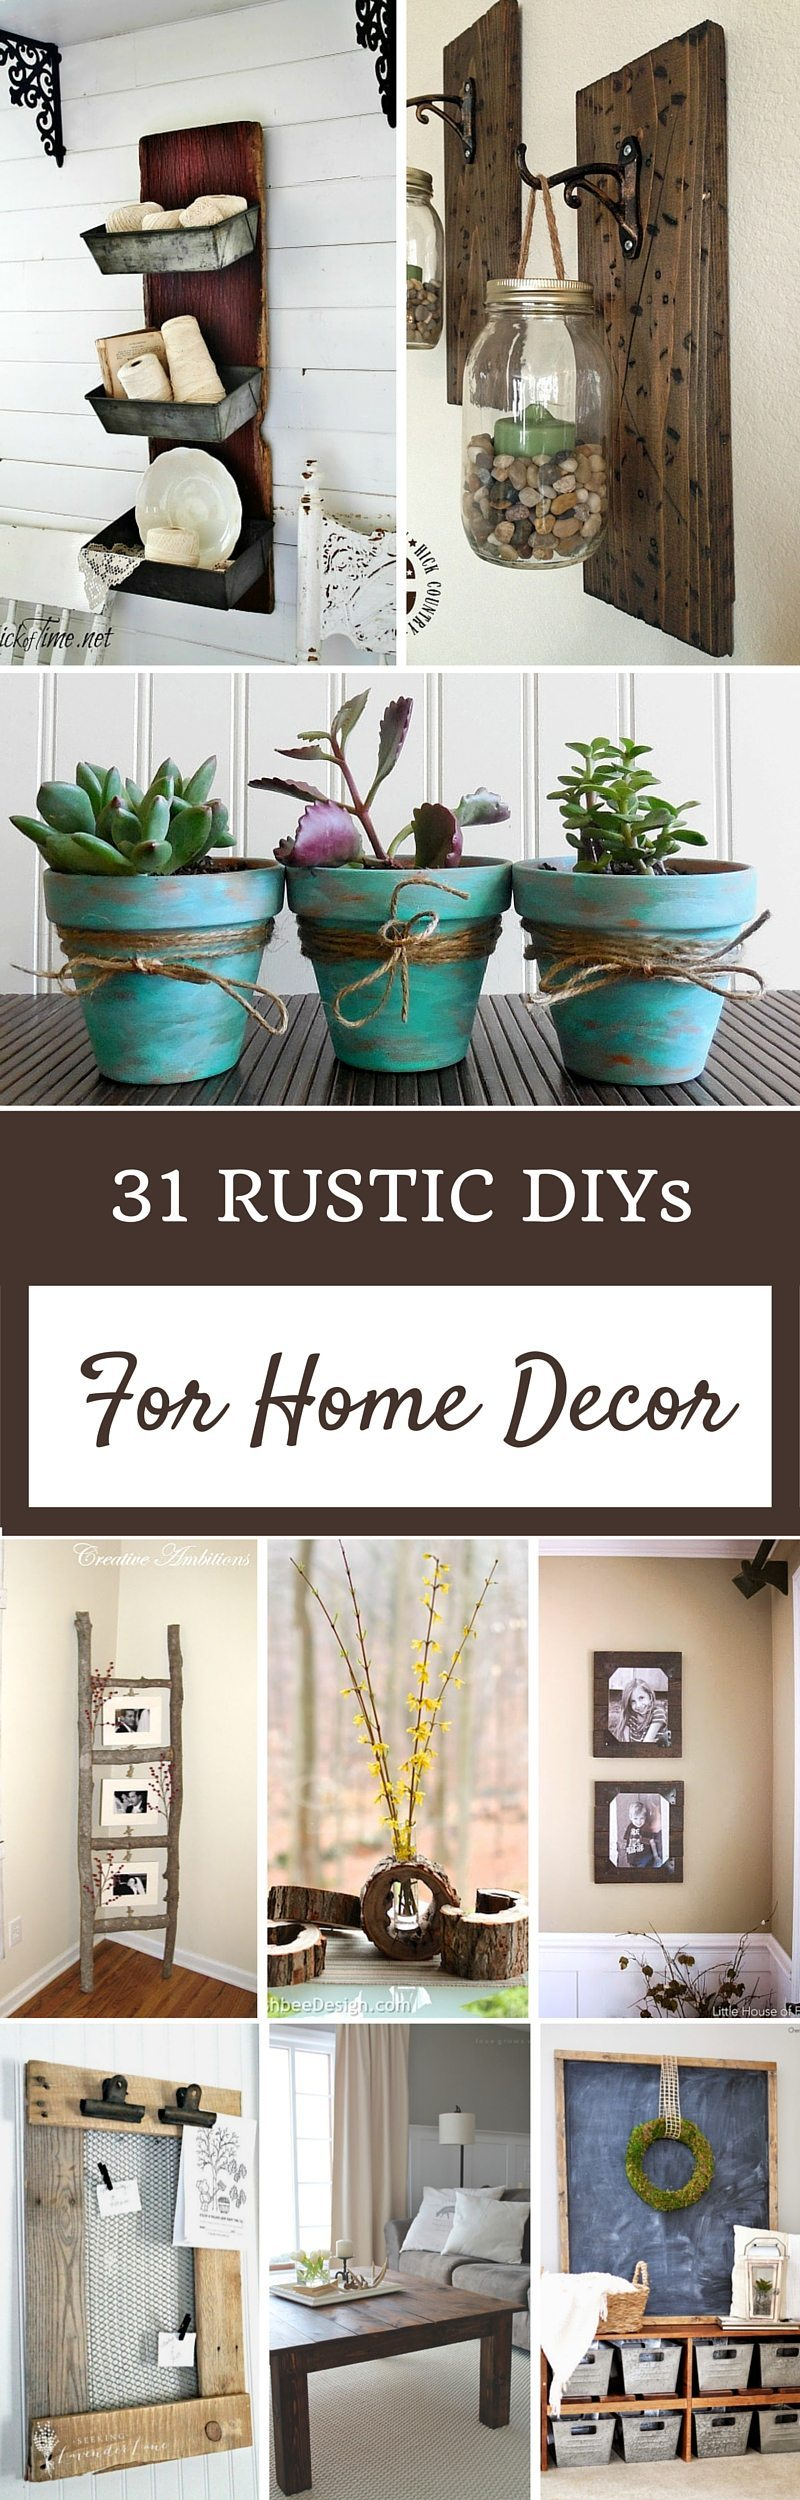 Rustic home decor ideas refresh restyle for House of decorative accessories